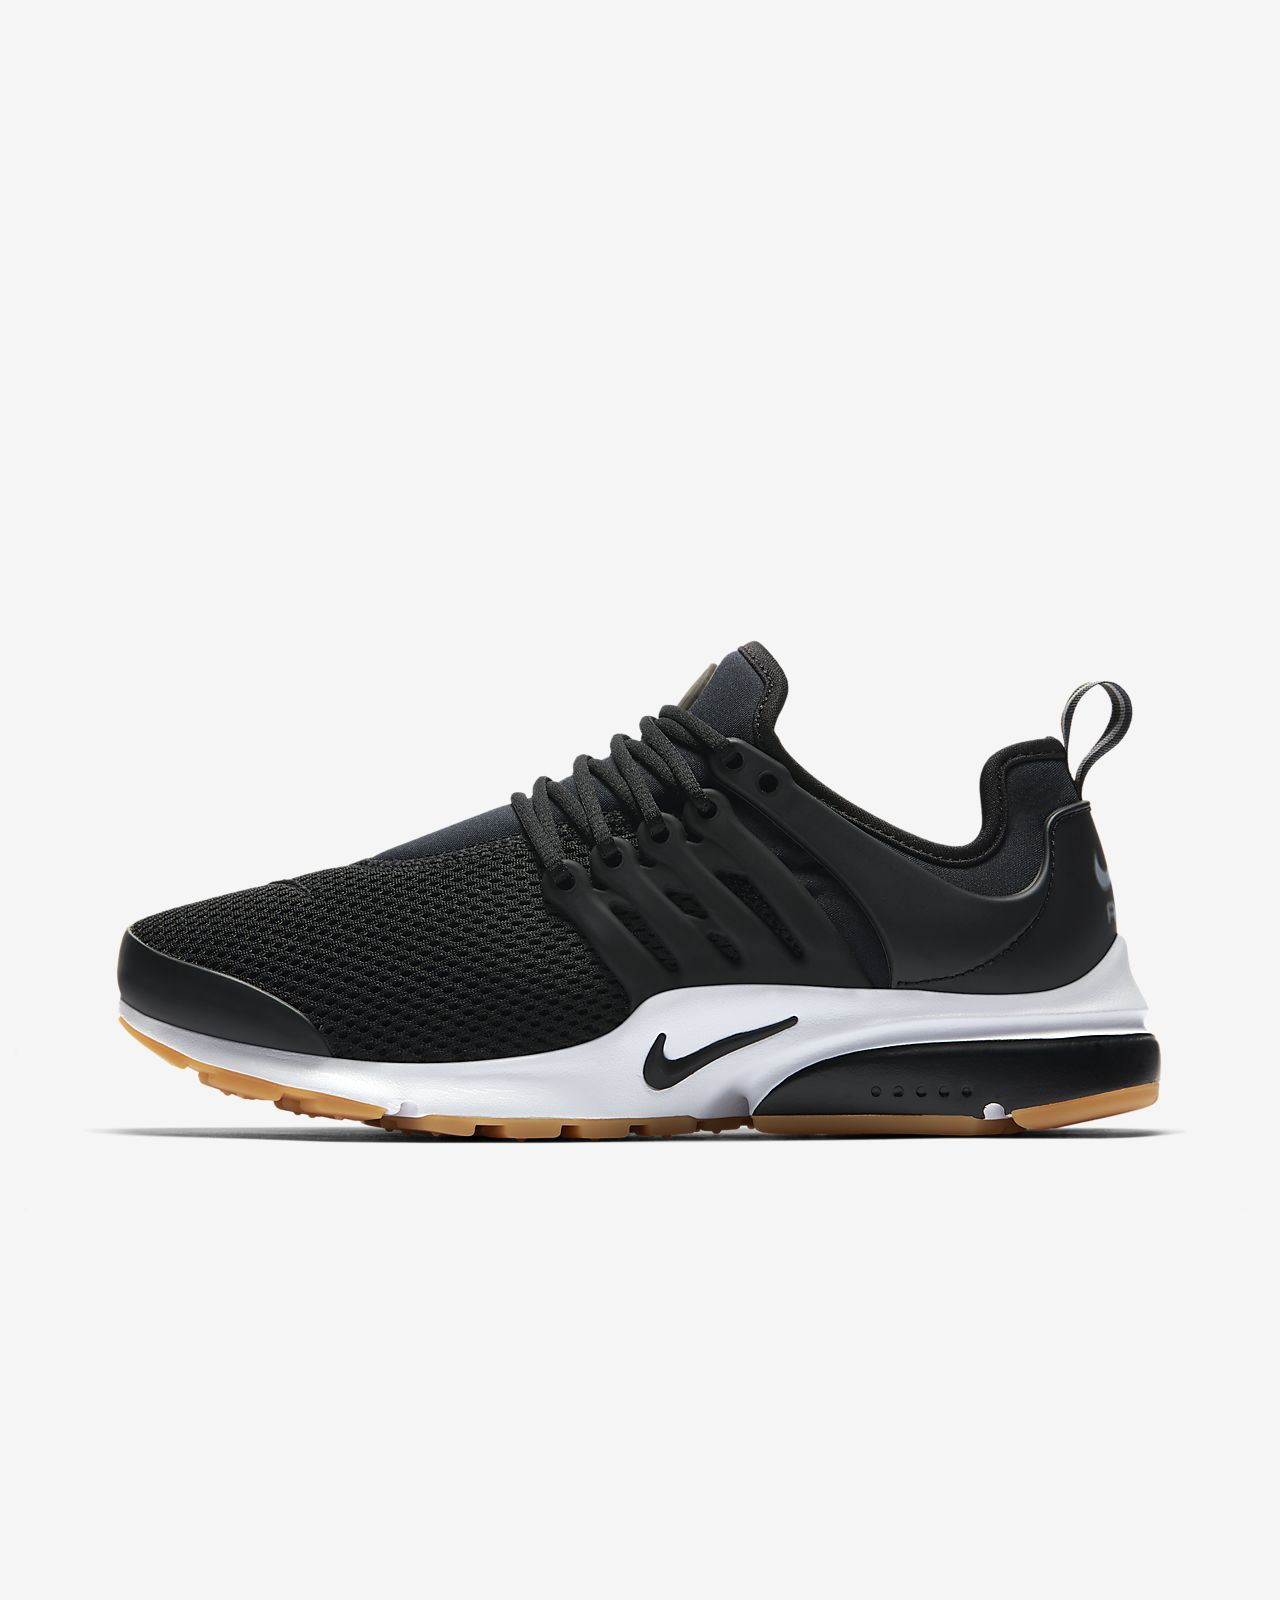 78024d308809 Nike Air Presto Women s Shoe. Nike.com